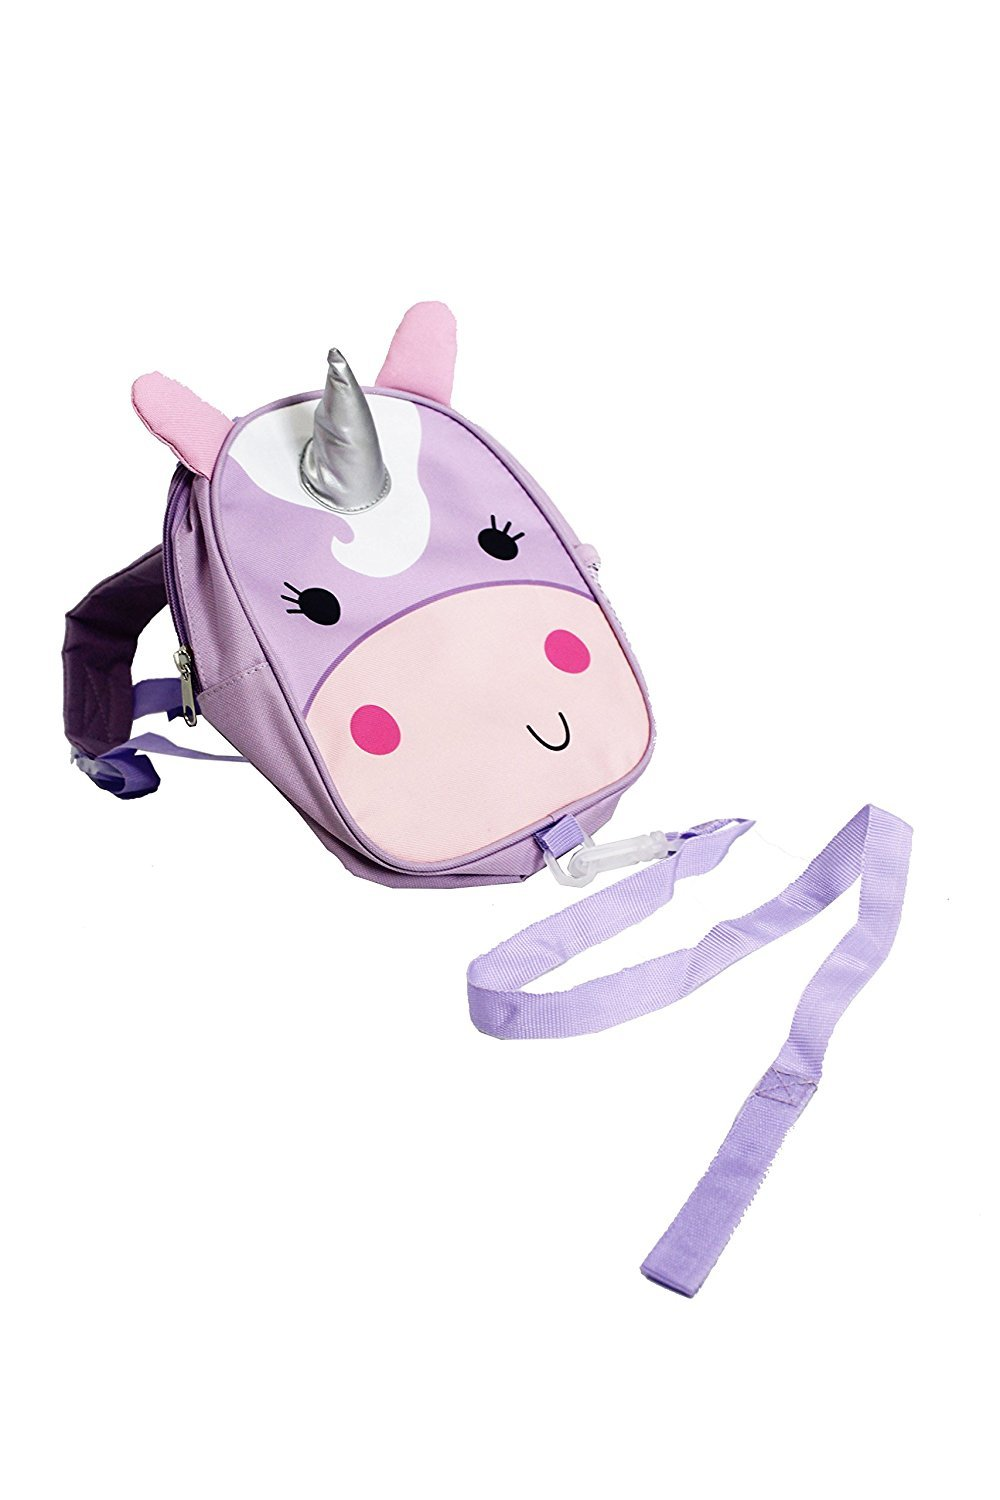 Red Kite Child Mini Rucksack  Toddler Backpack with Detachable Reins - Pink  Unicorn  Amazon.co.uk  Baby 7d924e4382ad7